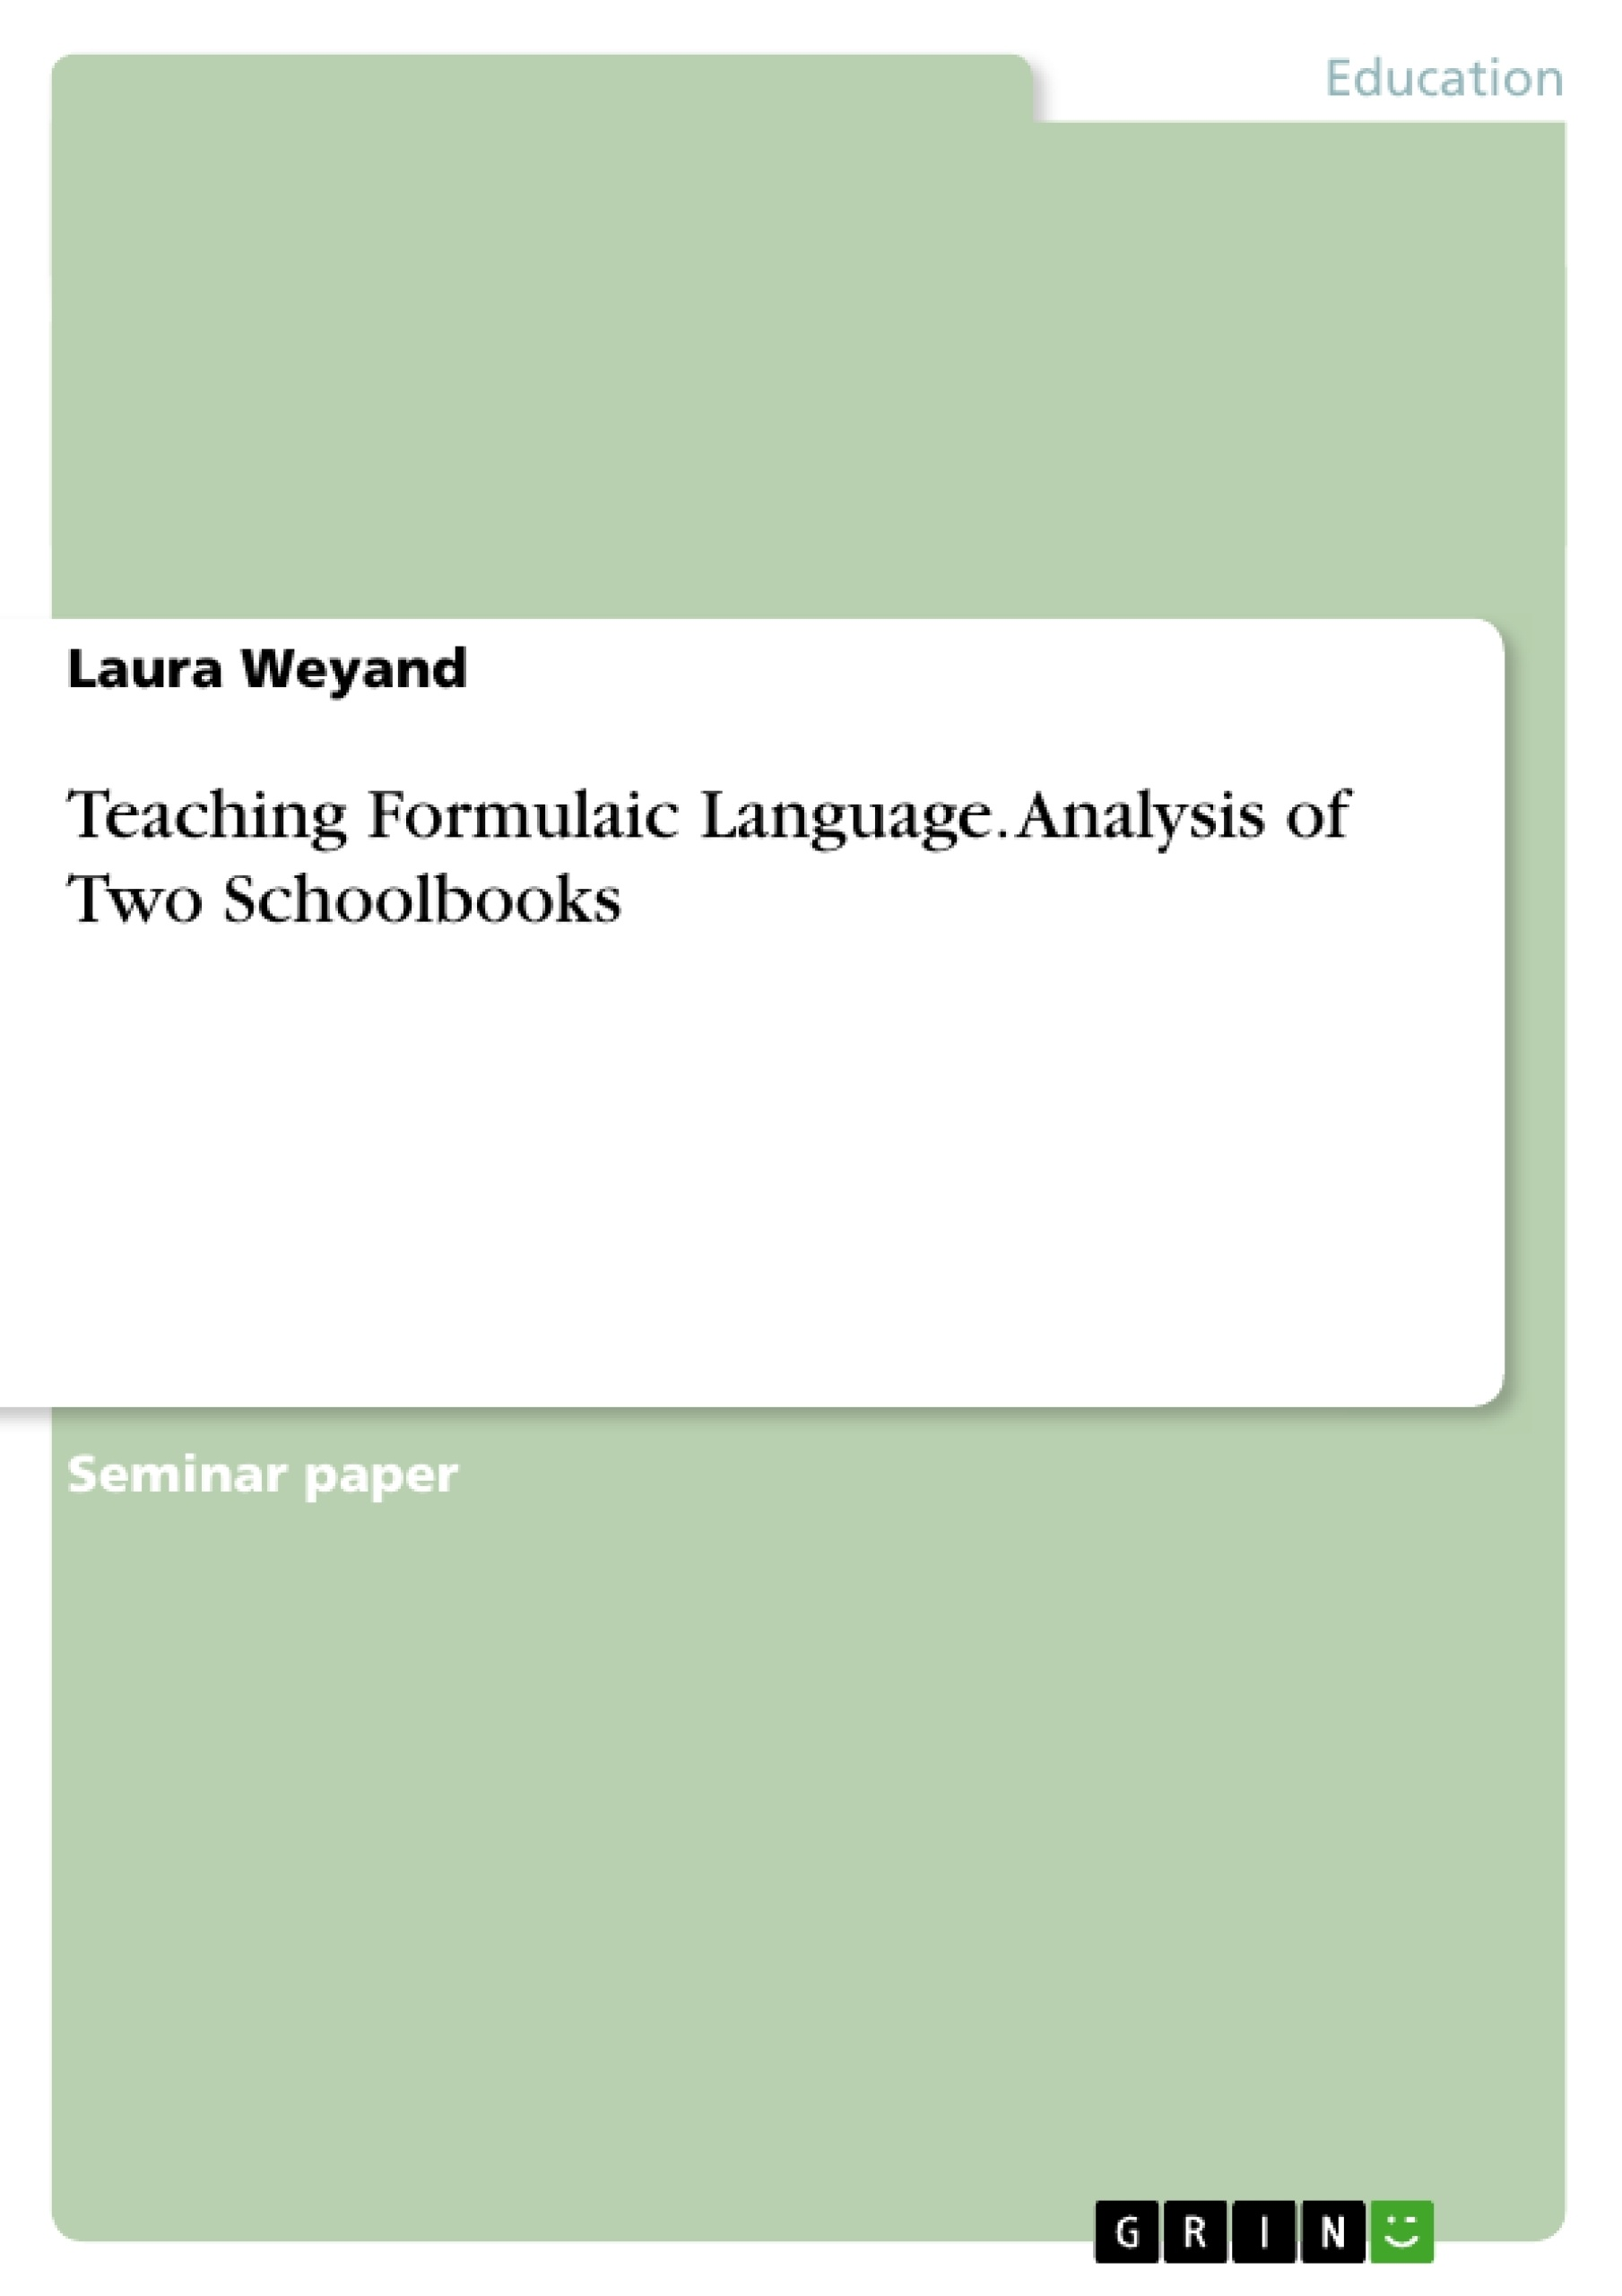 Title: Teaching Formulaic Language. Analysis of Two Schoolbooks